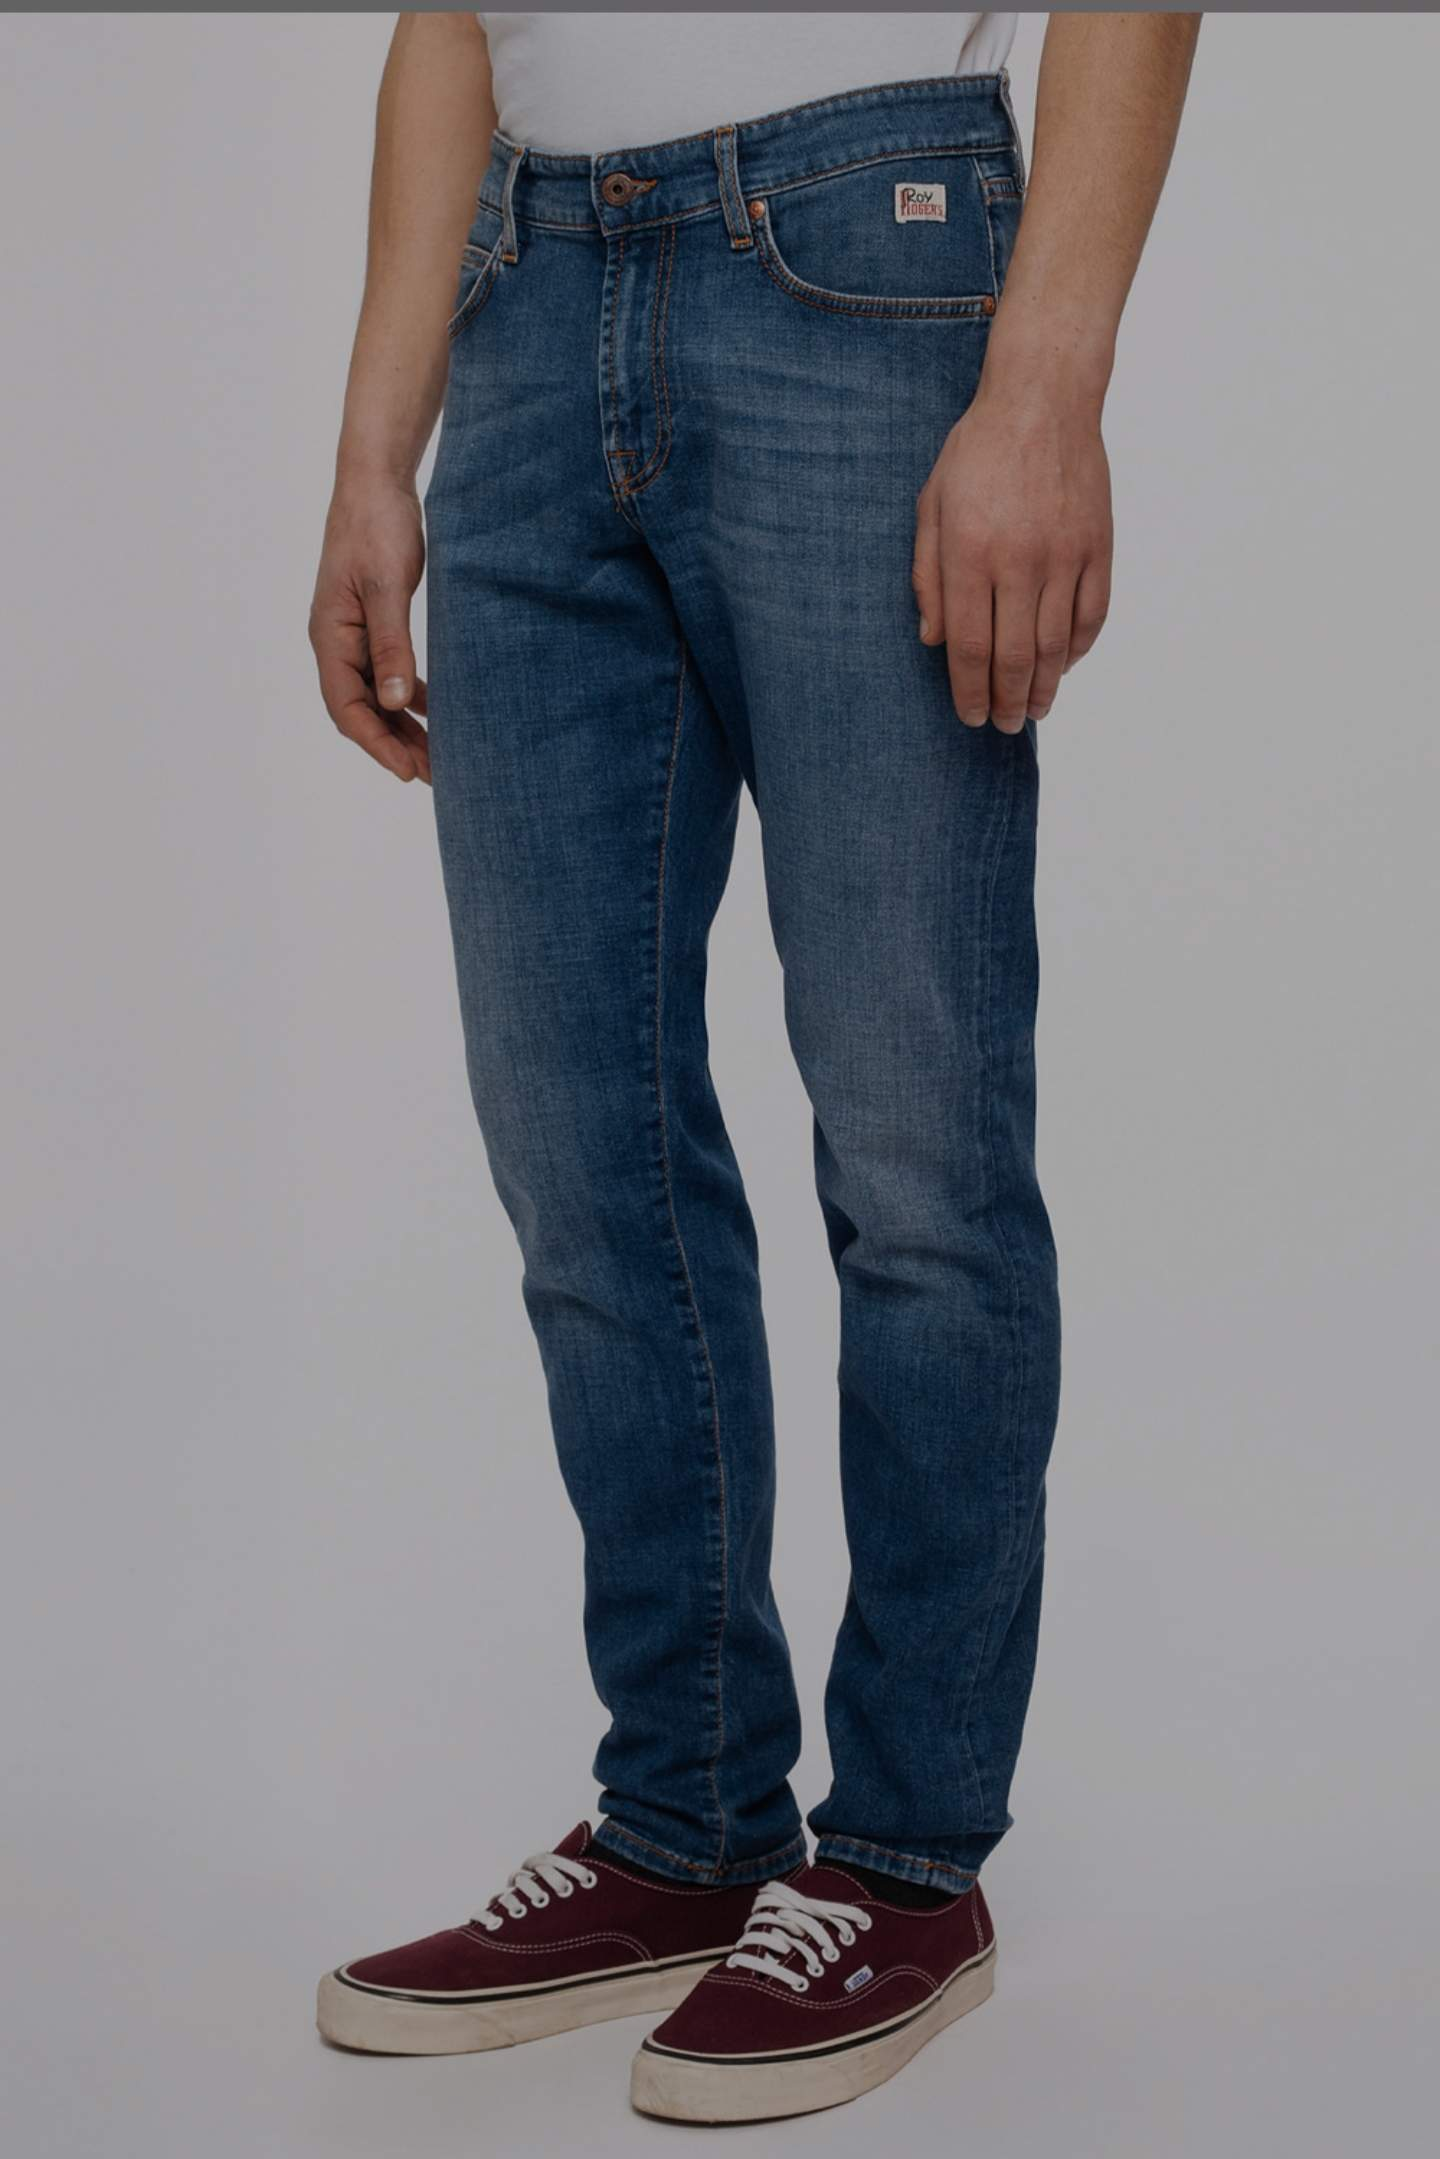 Jeans Roy Roger's 517 stretch nick